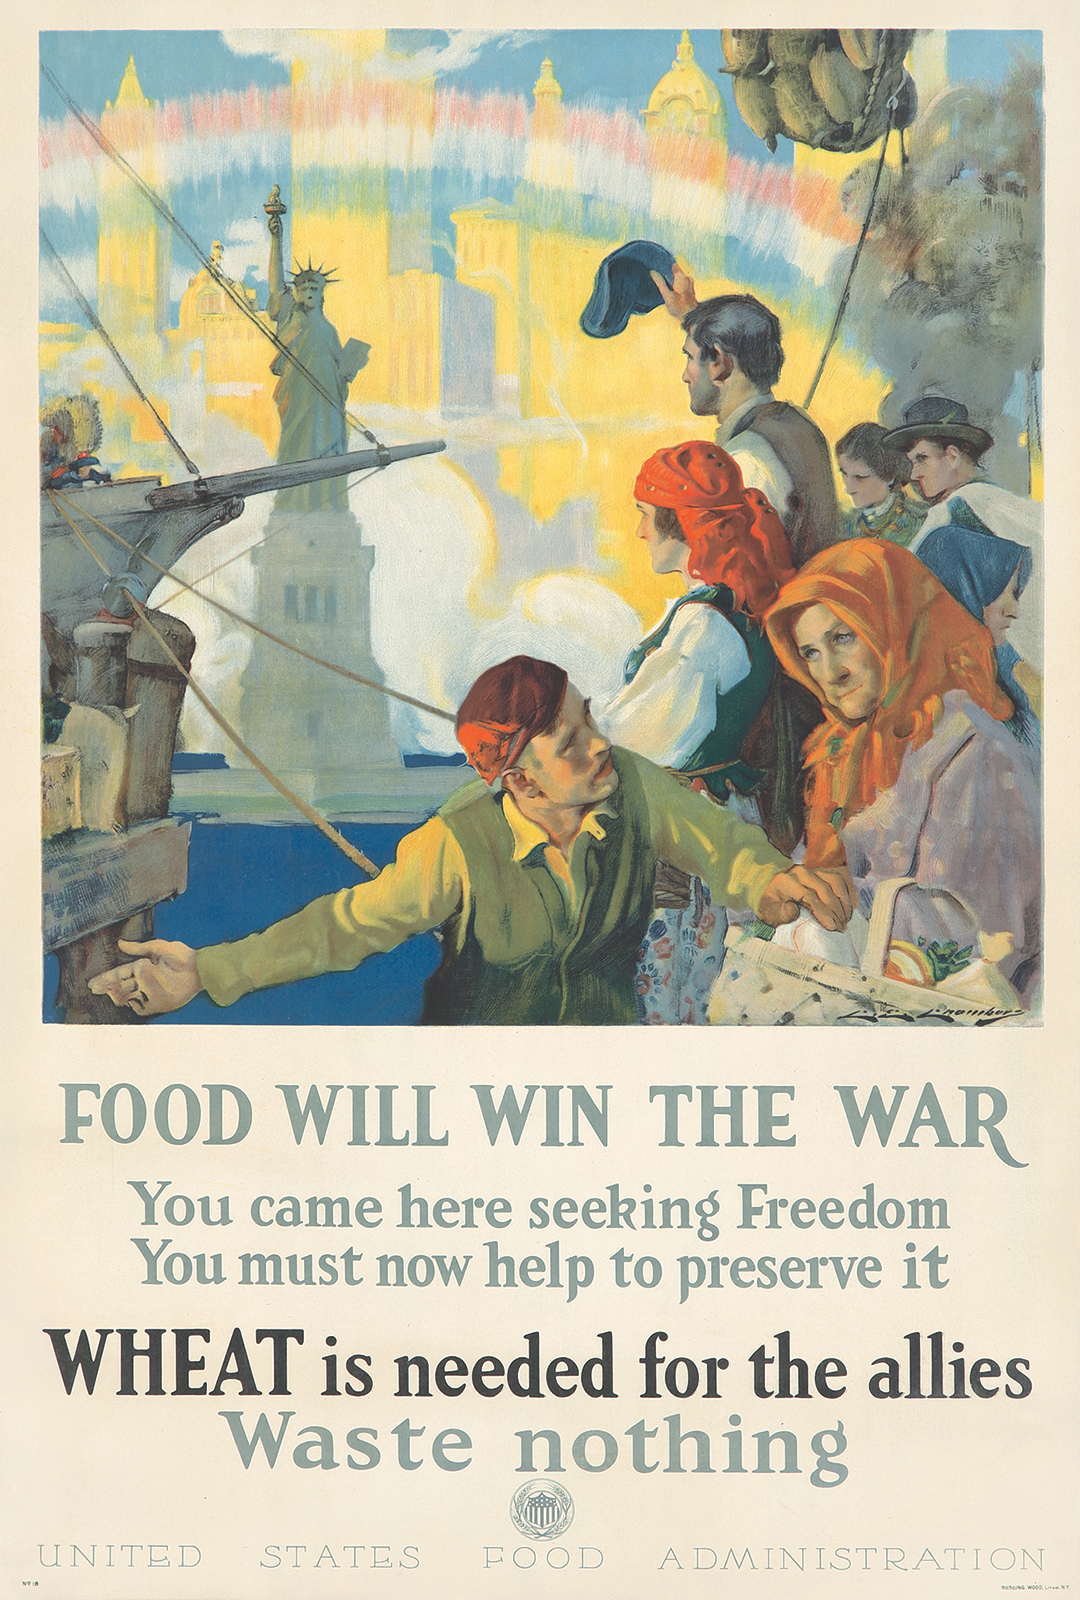 78. Food Will Win the War. 1917.